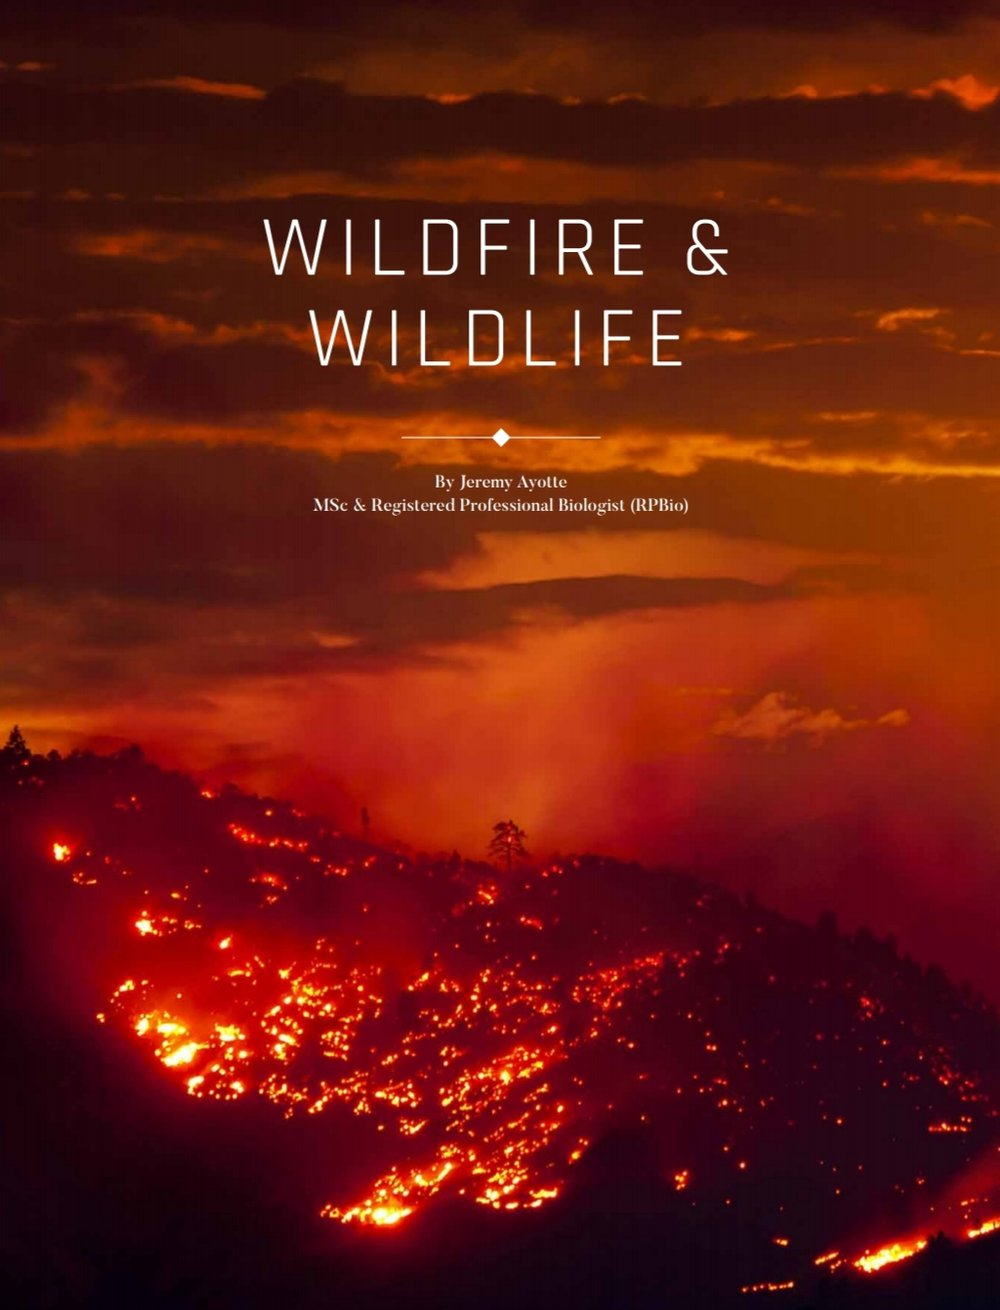 Wildfire article by Jeremy Ayotte from BC